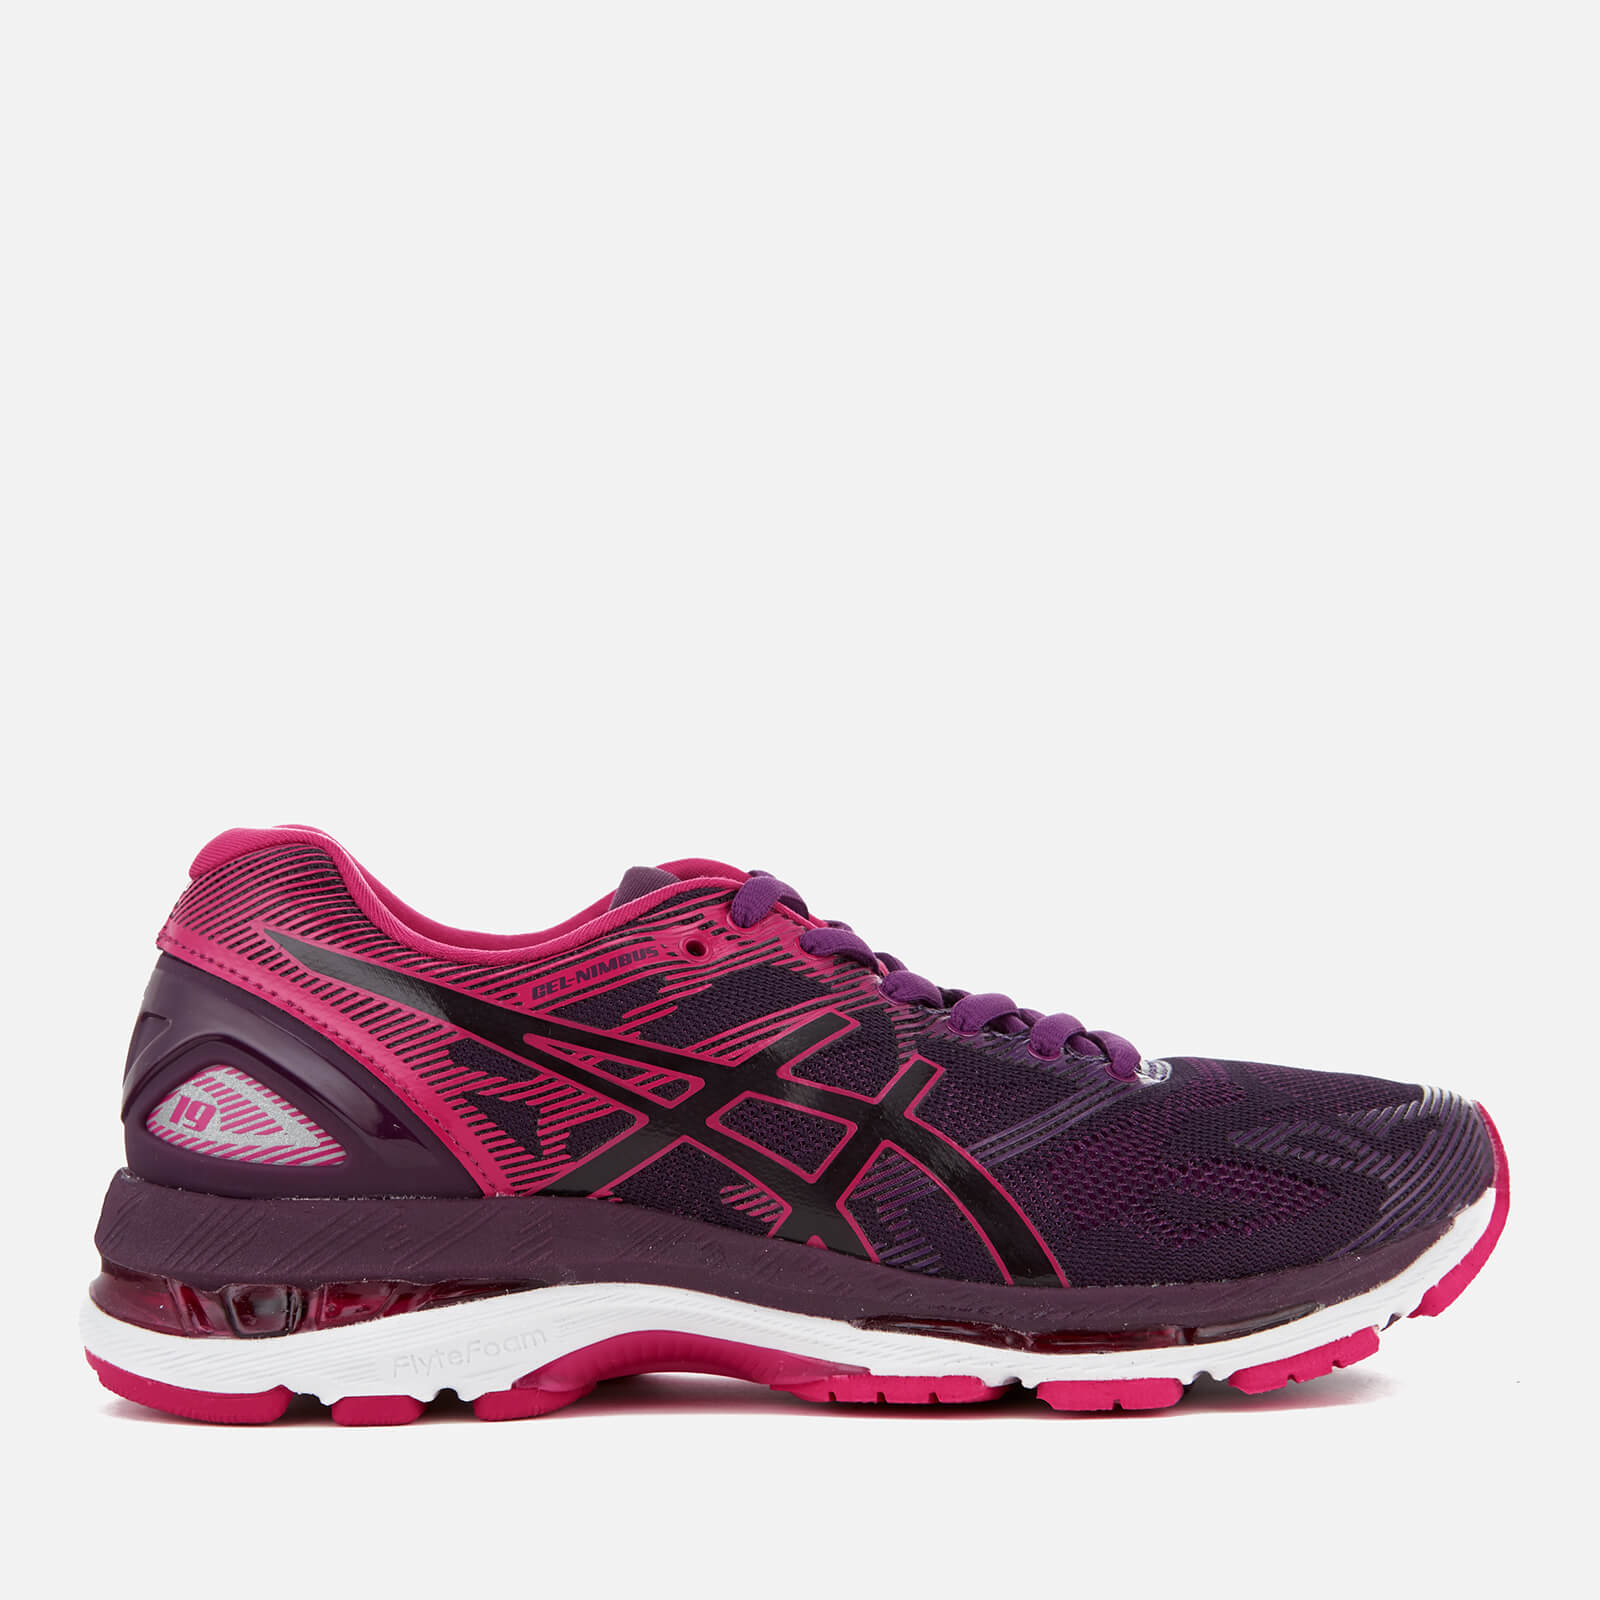 the best attitude 1c089 f1607 Asics Running Women's Gel Nimbus 19 Trainers - Black/Cosmo Pink/Winter Bloom